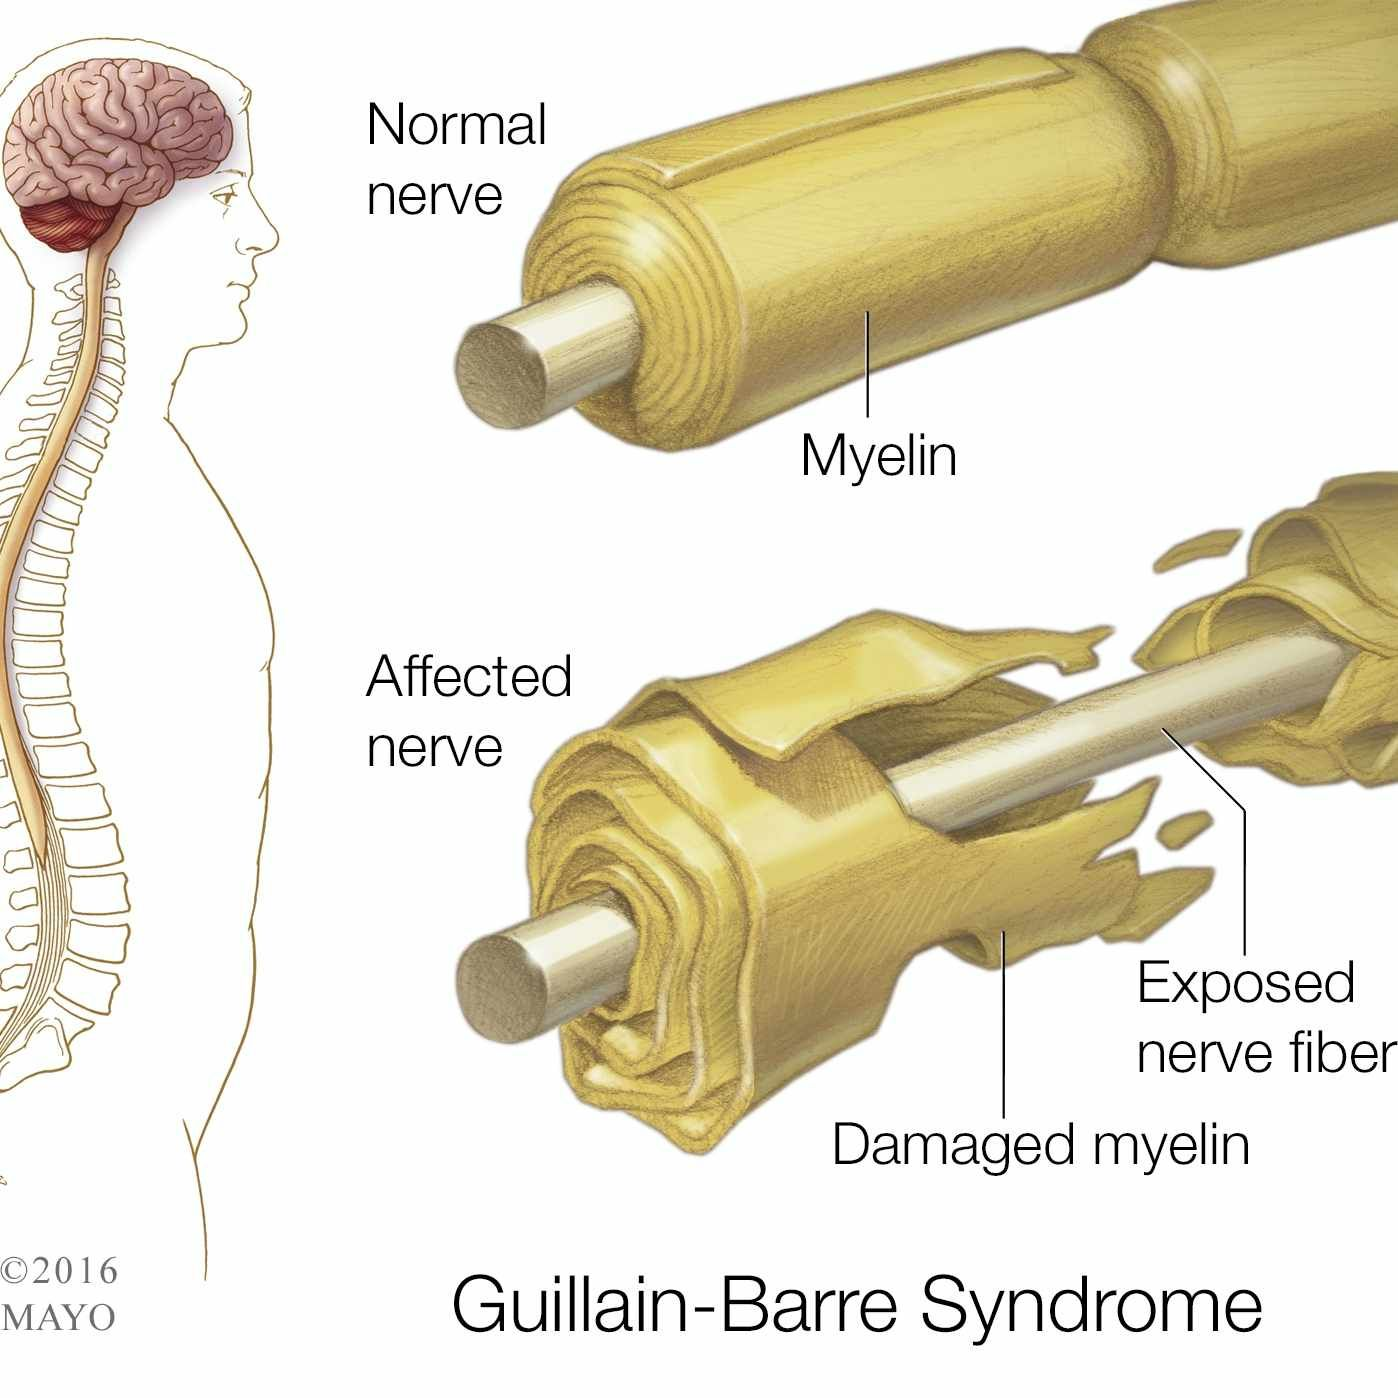 a research on guillain barre syndrome Guillain-barrè syndrome is an autoimmune condition in which the person's peripheral nerves are attacked by the body's own immune defence system.